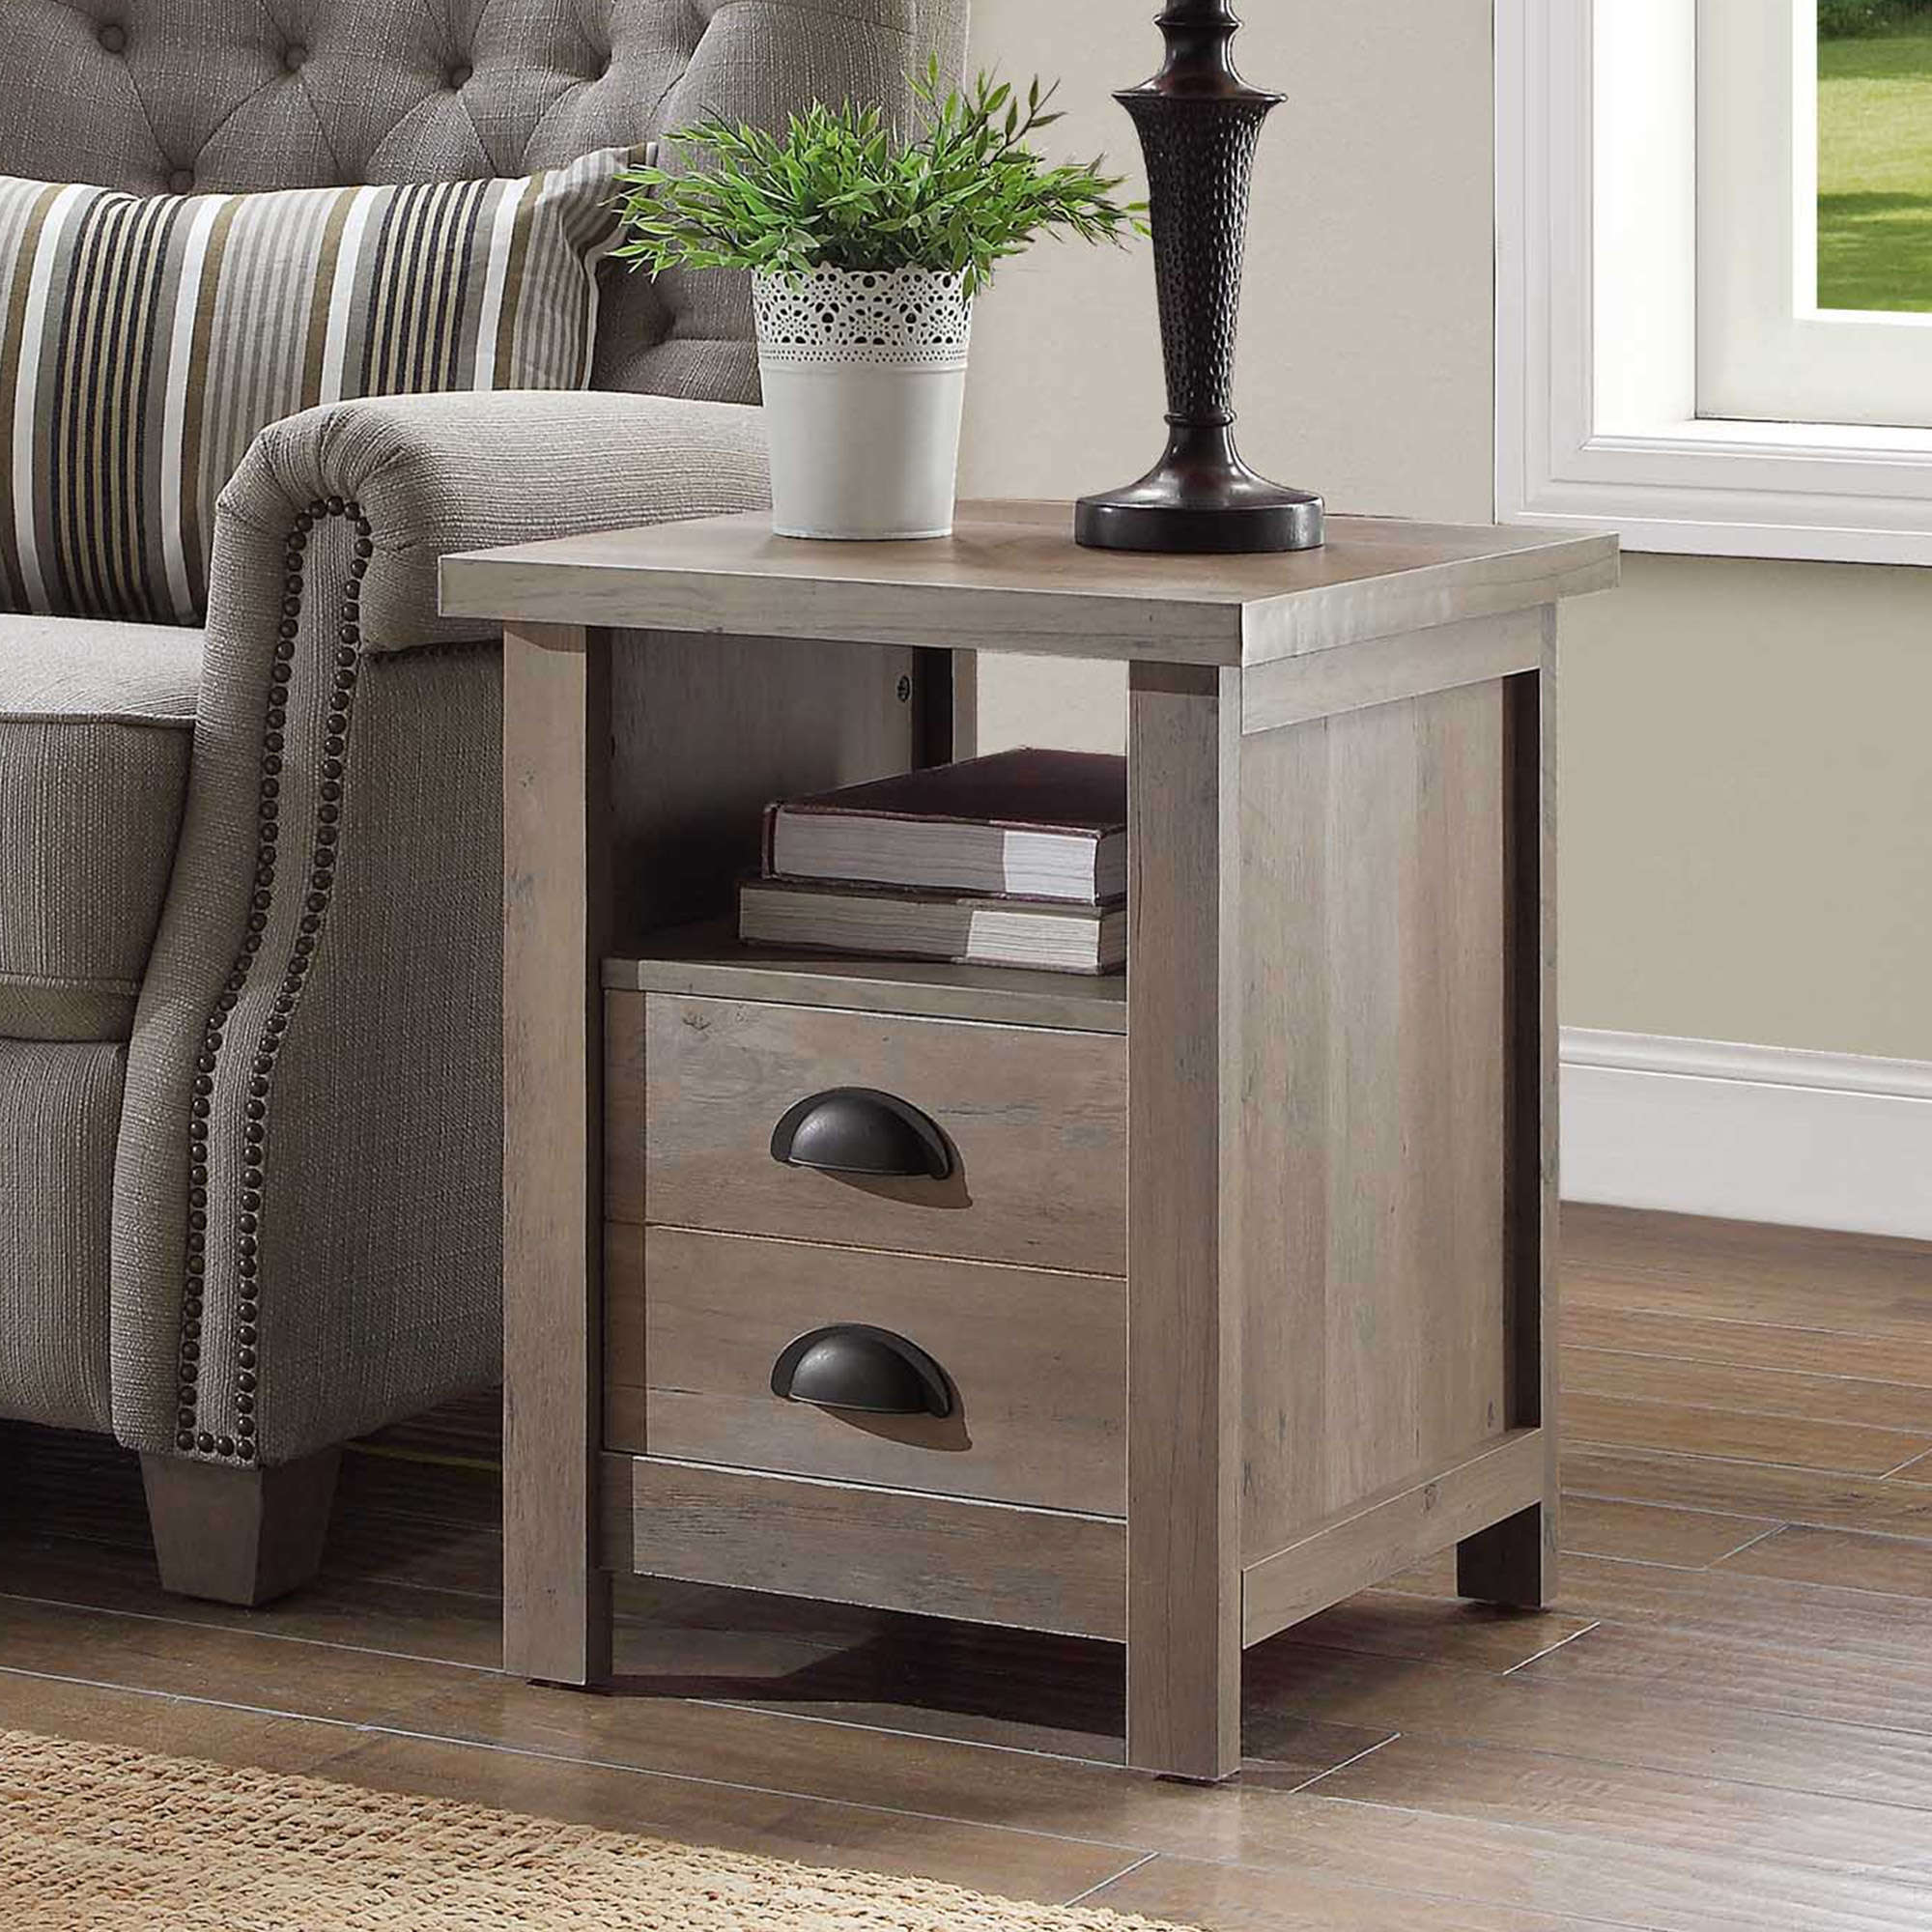 better homes and gardens granary modern farmhouse end table style accent multiple finishes pottery barn white side west elm outside bar furniture ikea wall next mirrored coffee